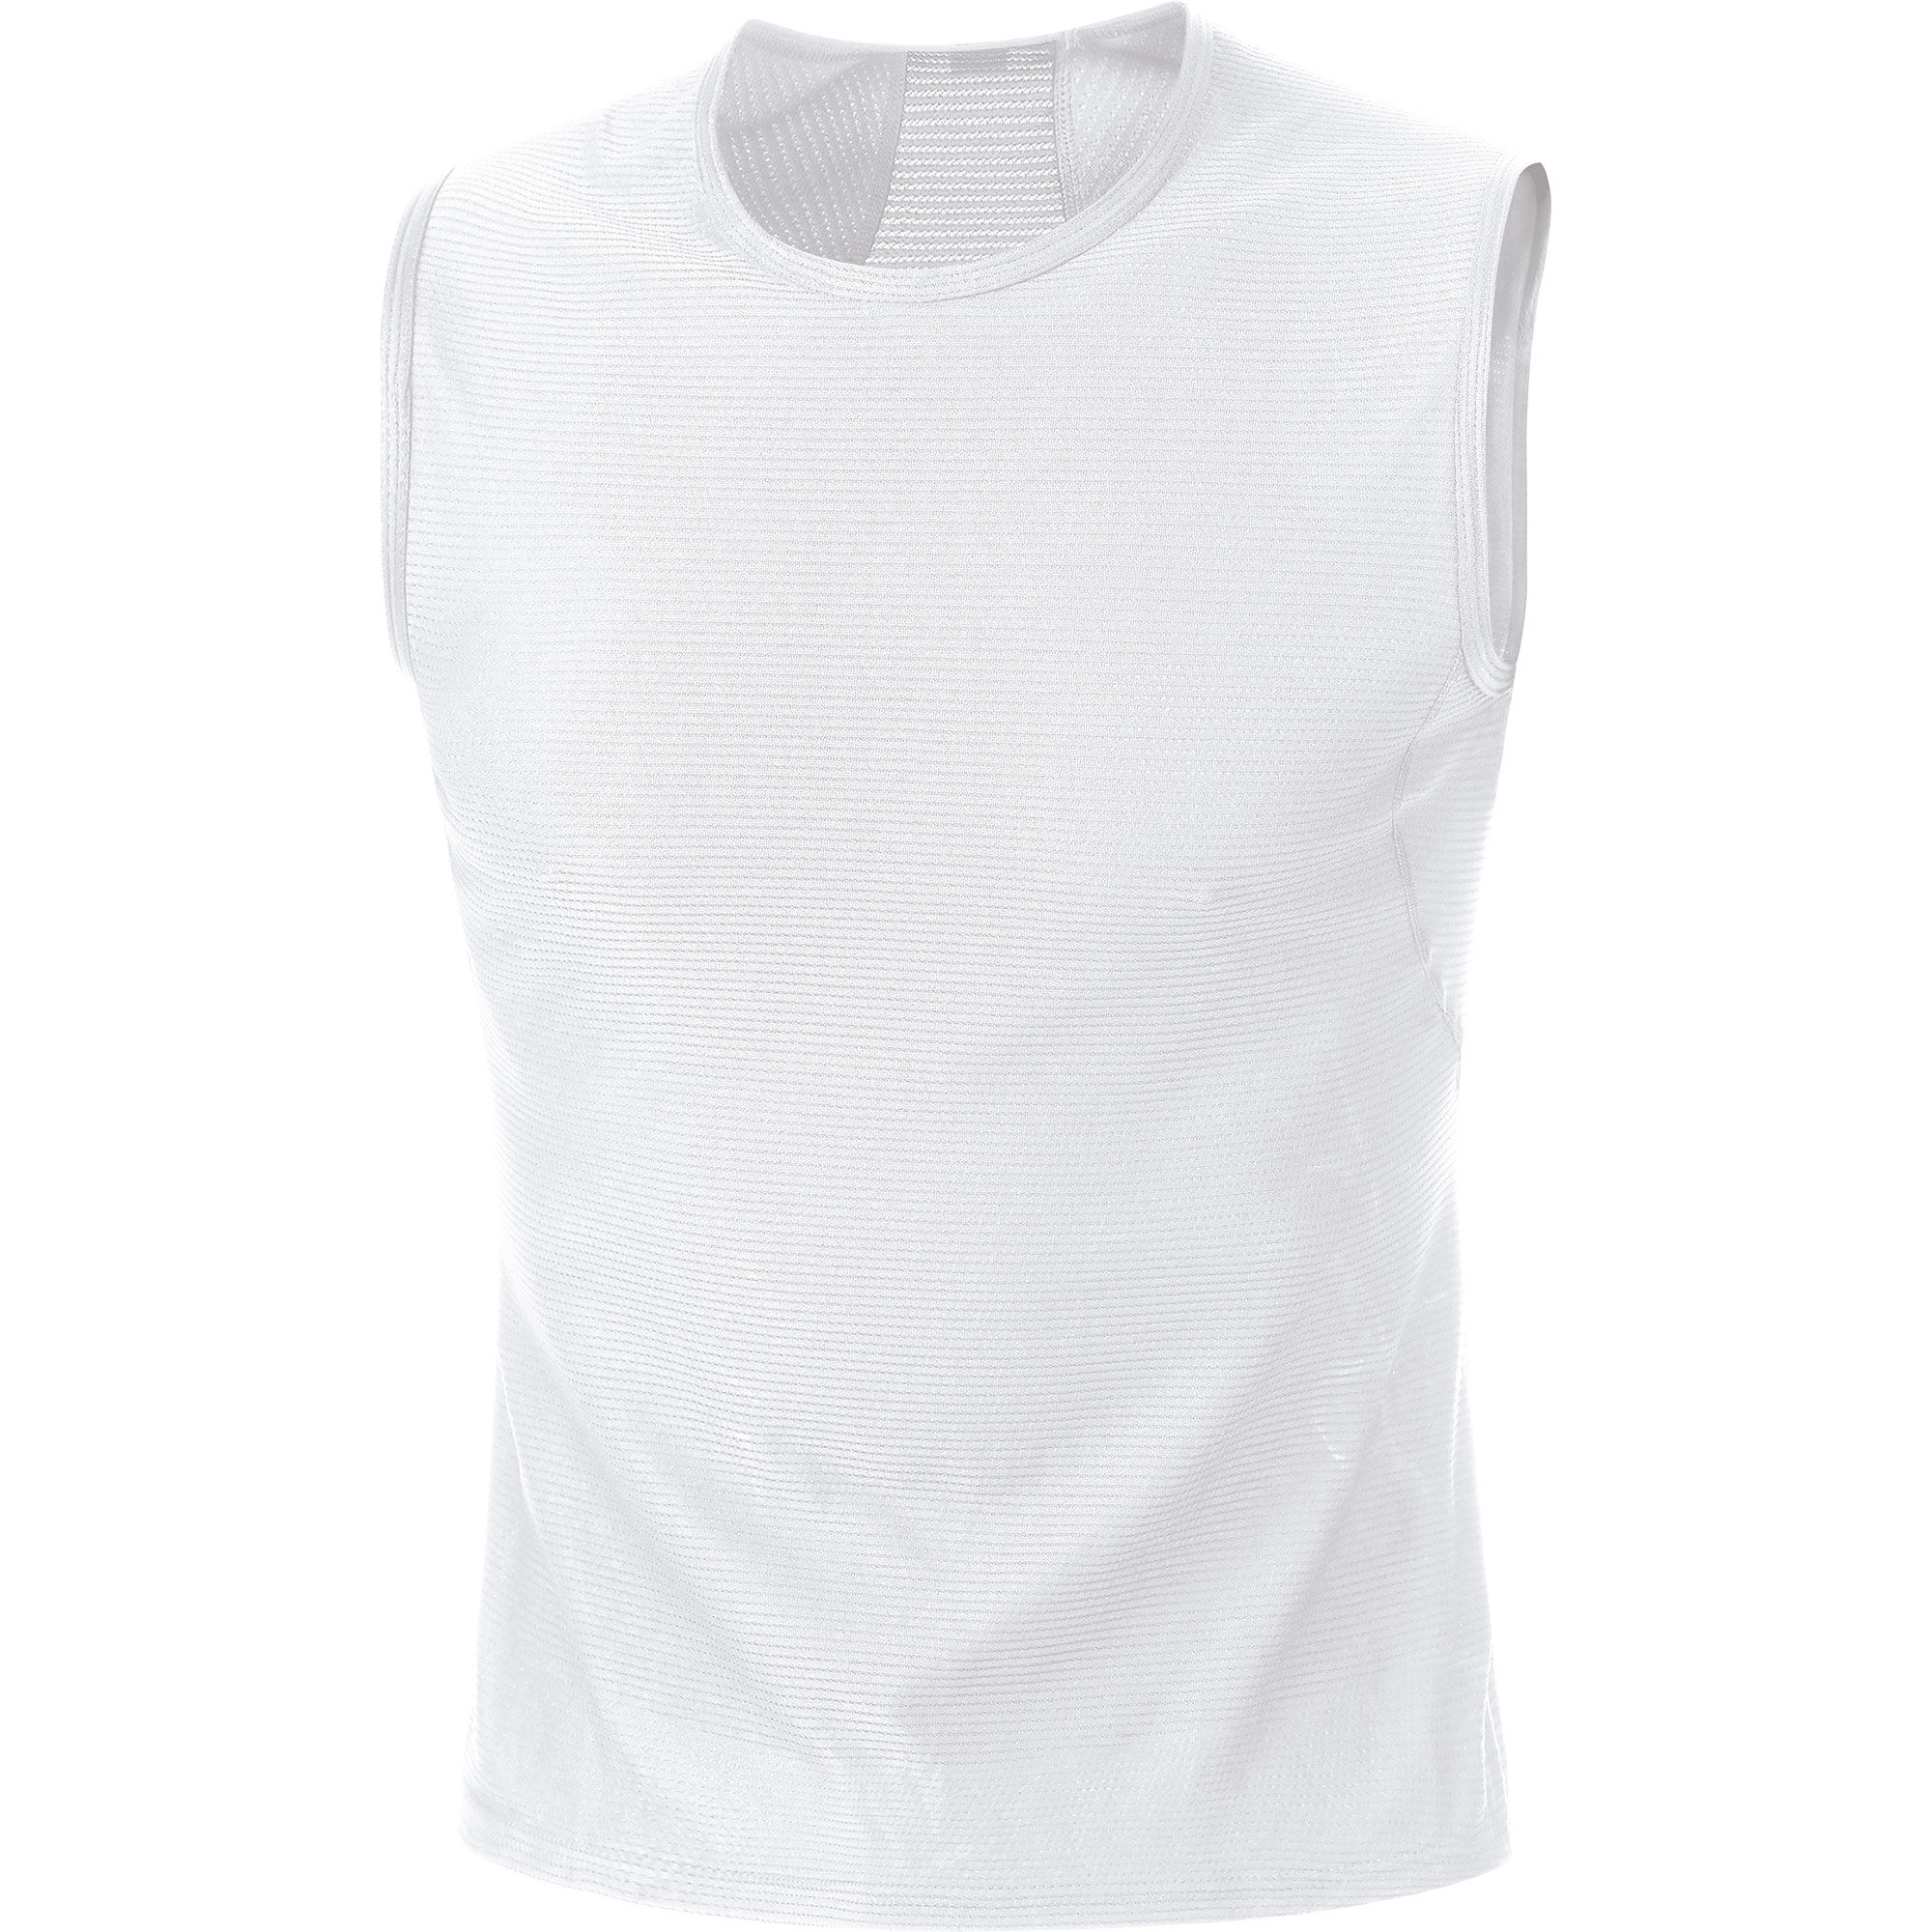 Gore Base Layer Shirt ärmellos (Weiß)